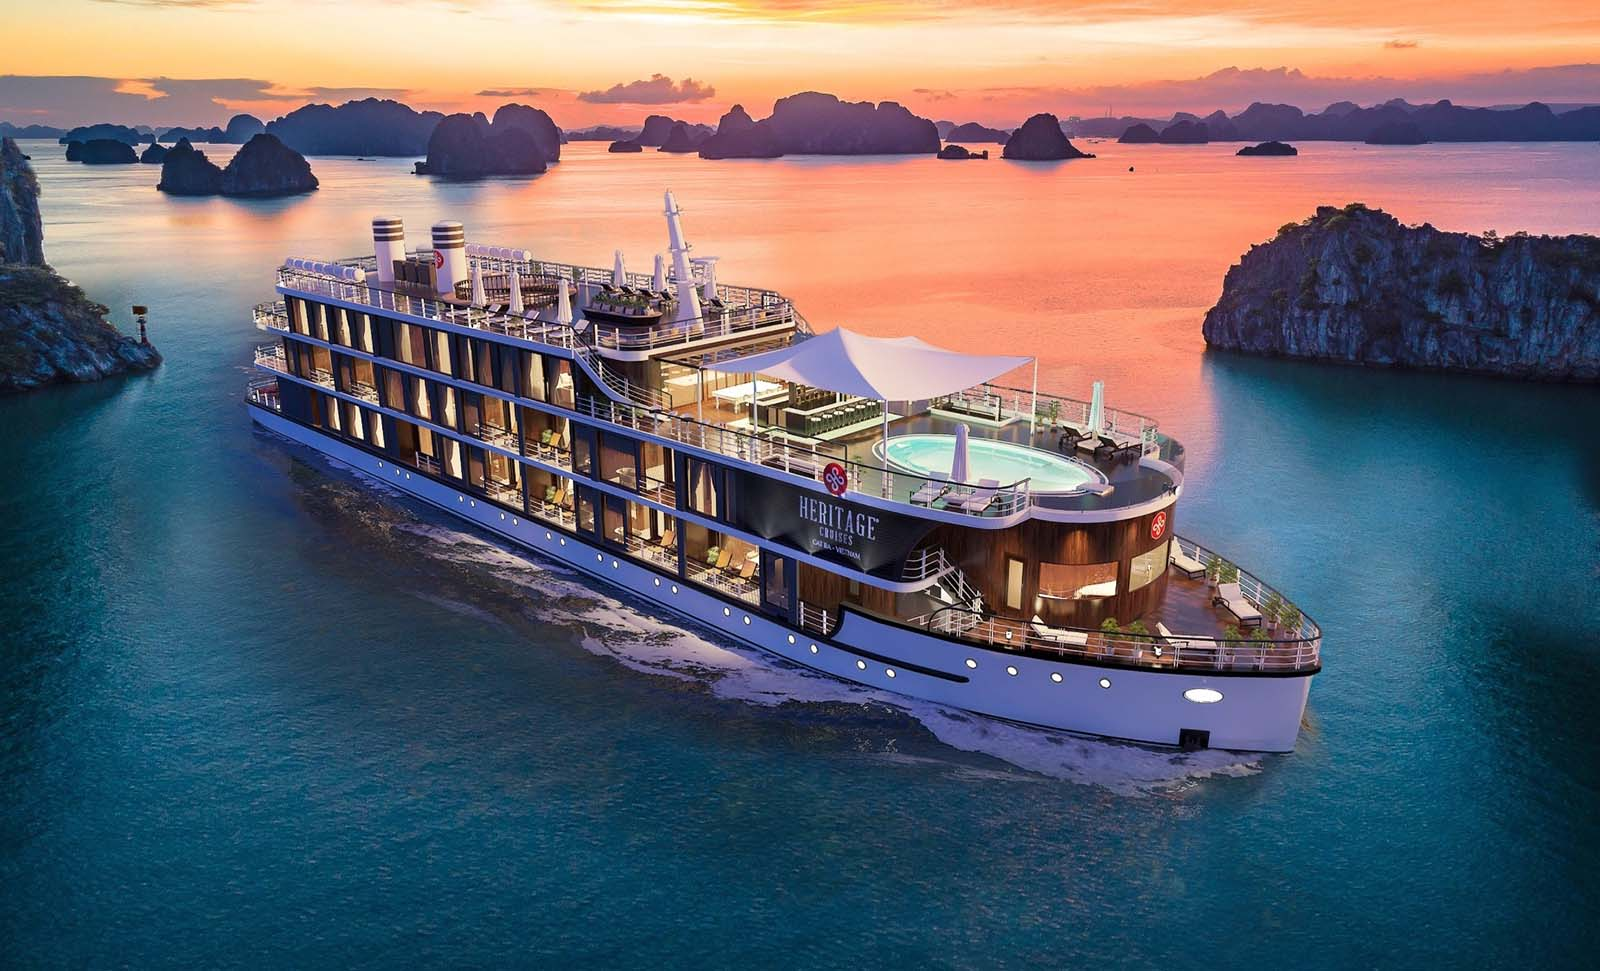 Heritage Cruises is always present to escort guests for discovering every corner of Lan Ha Bay and Cat Ba Island